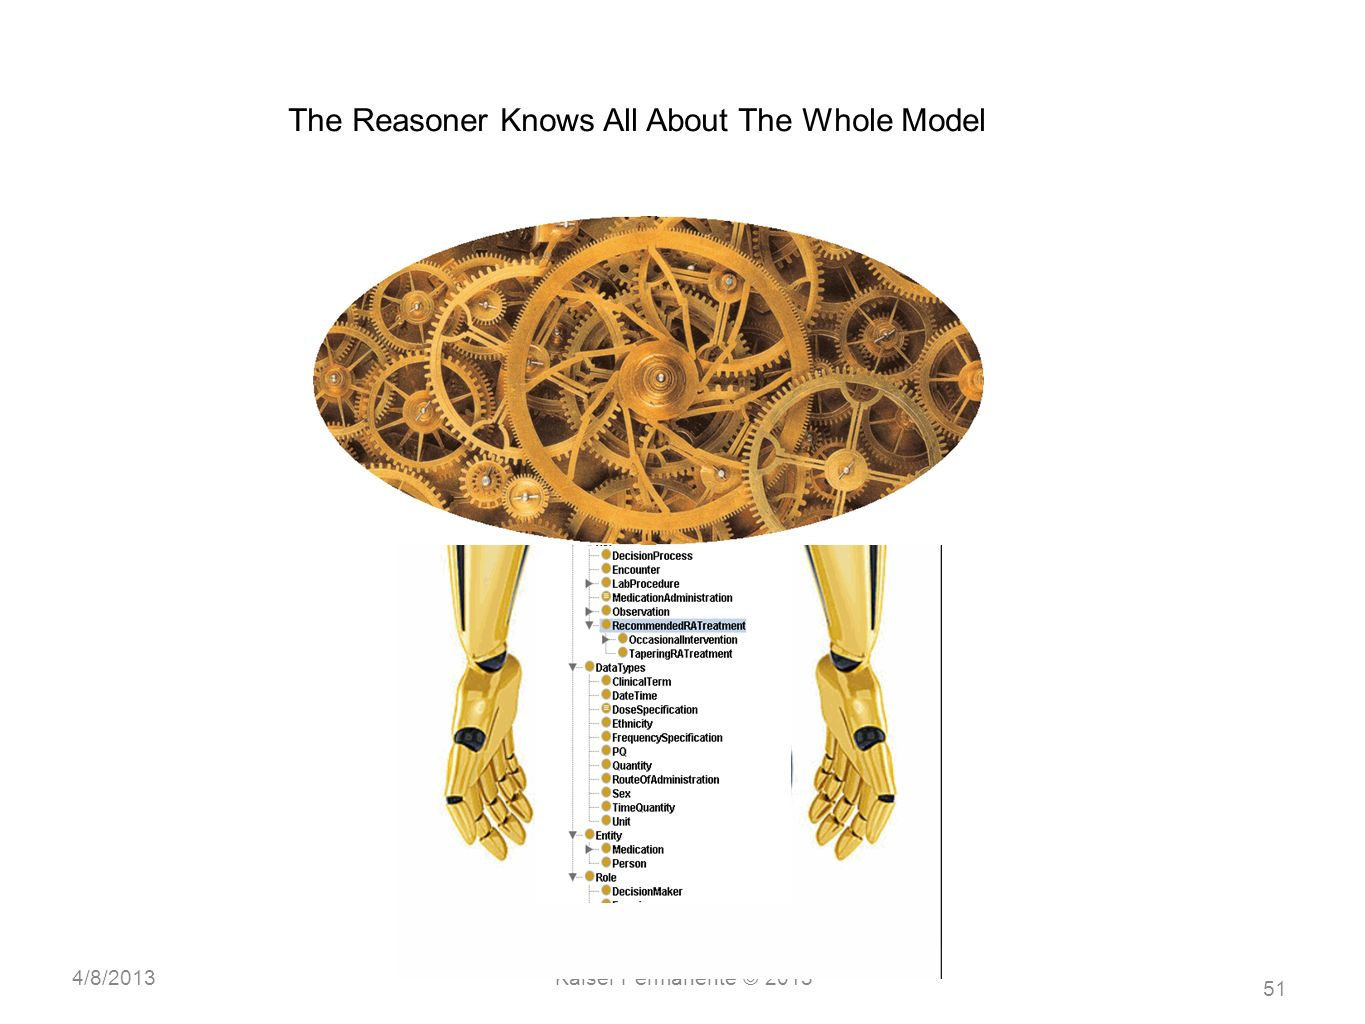 The Reasoner Knows All About The Whole Model